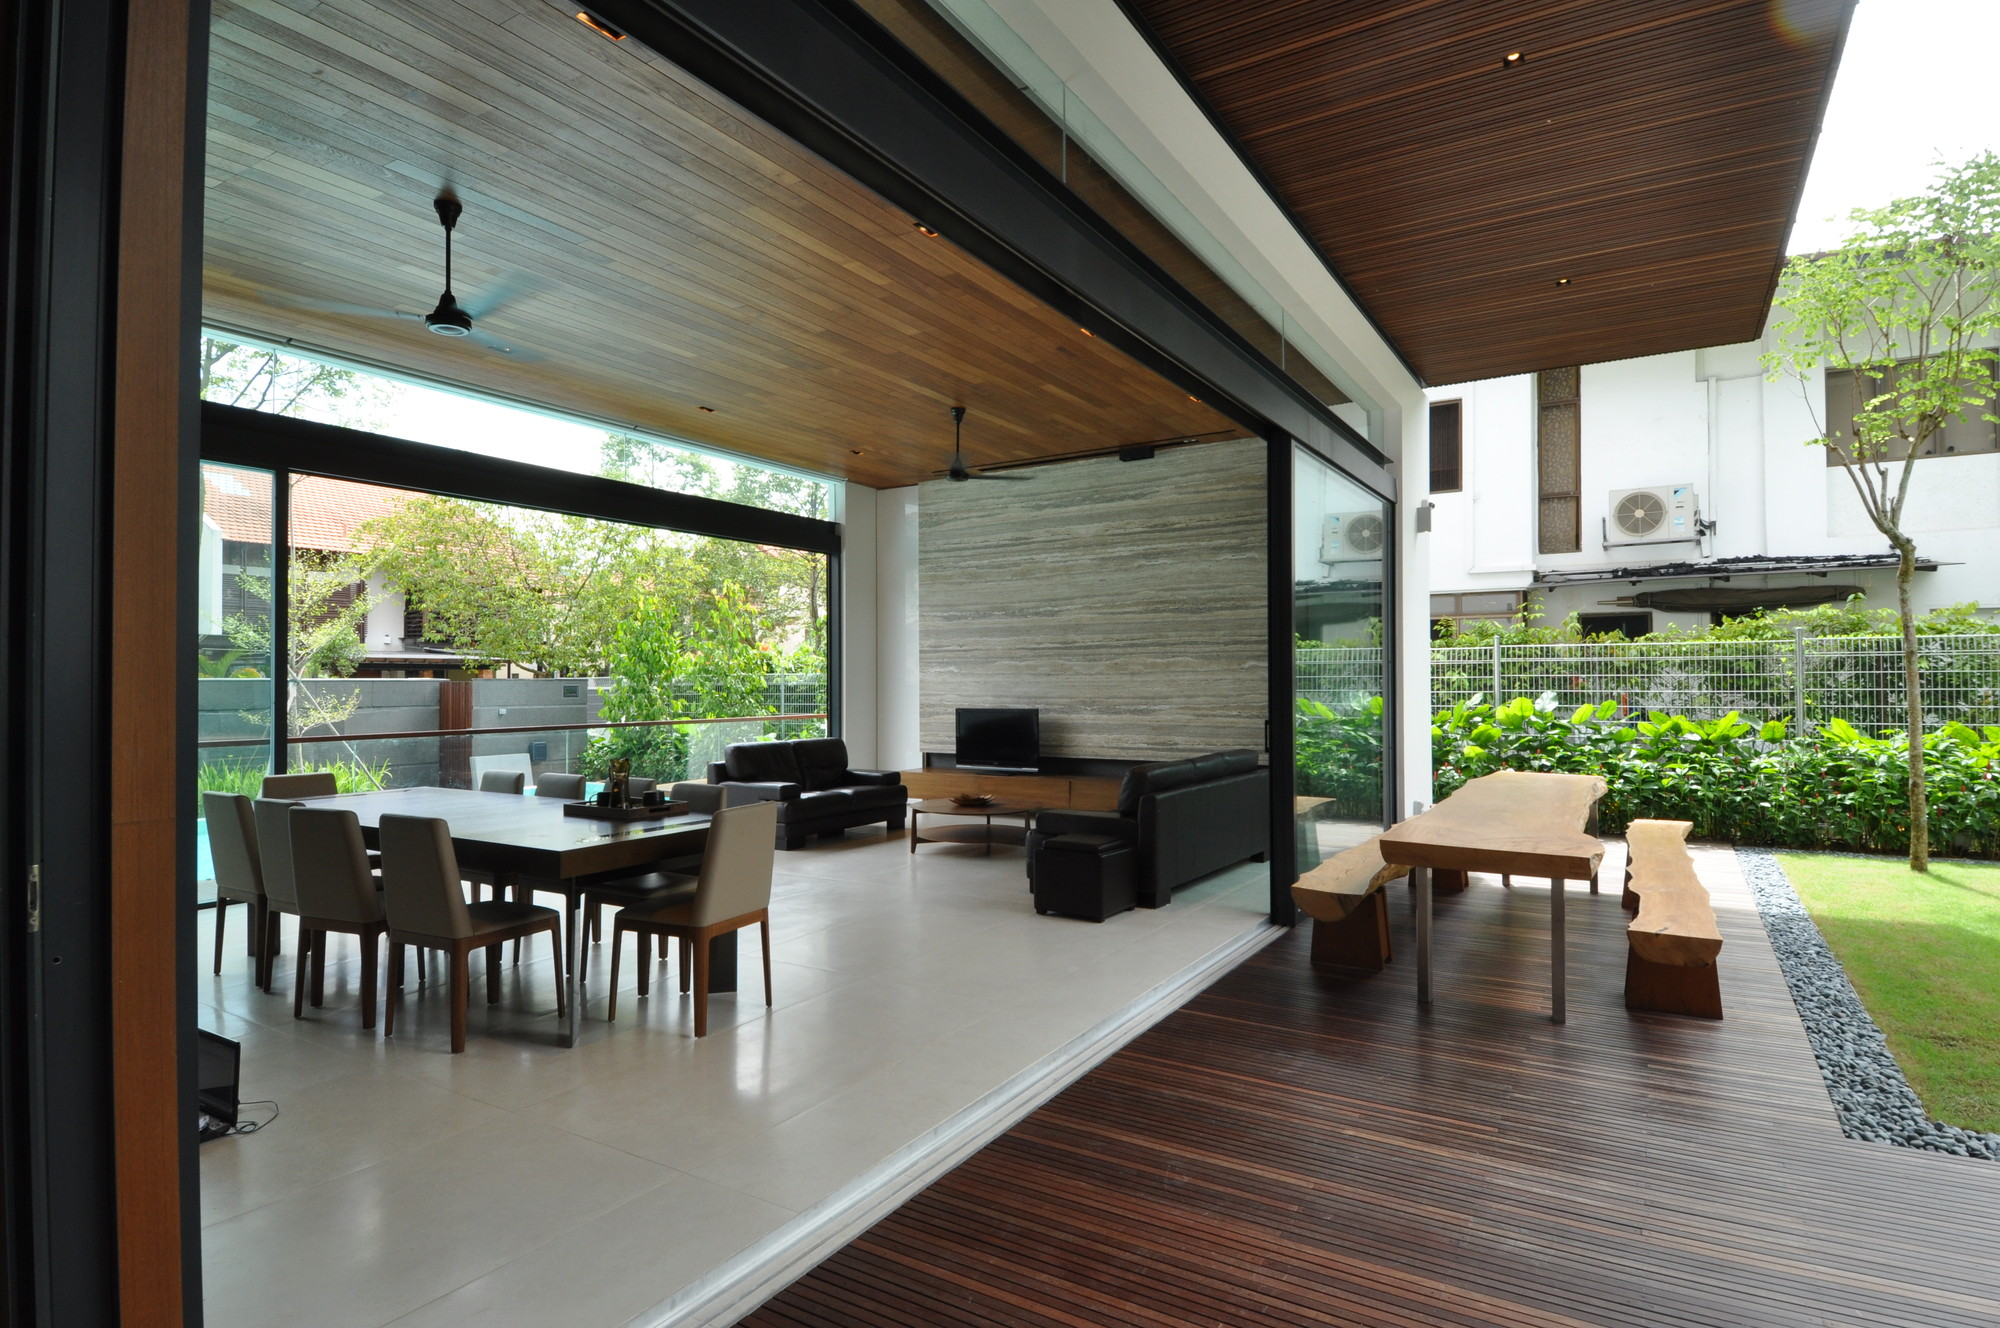 Sunset terrace house a collective archdaily for House terrace